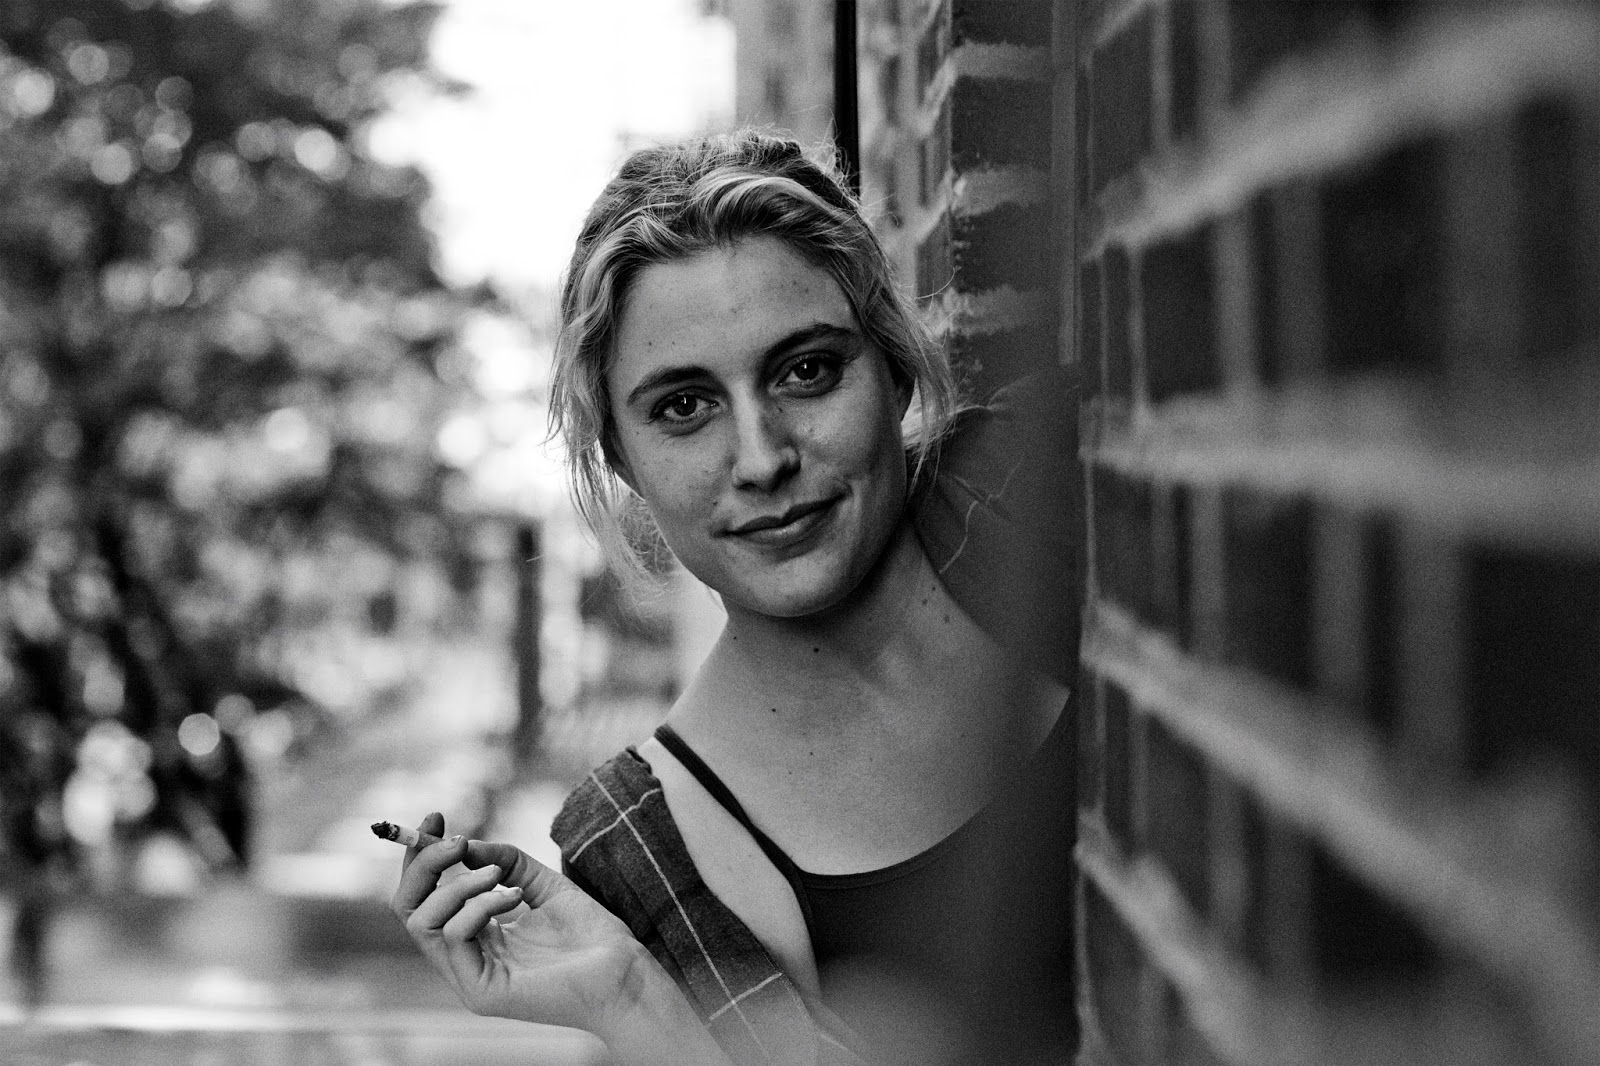 http://cdn.pastemagazine.com/www/blogs/lists/gerwig.jpg